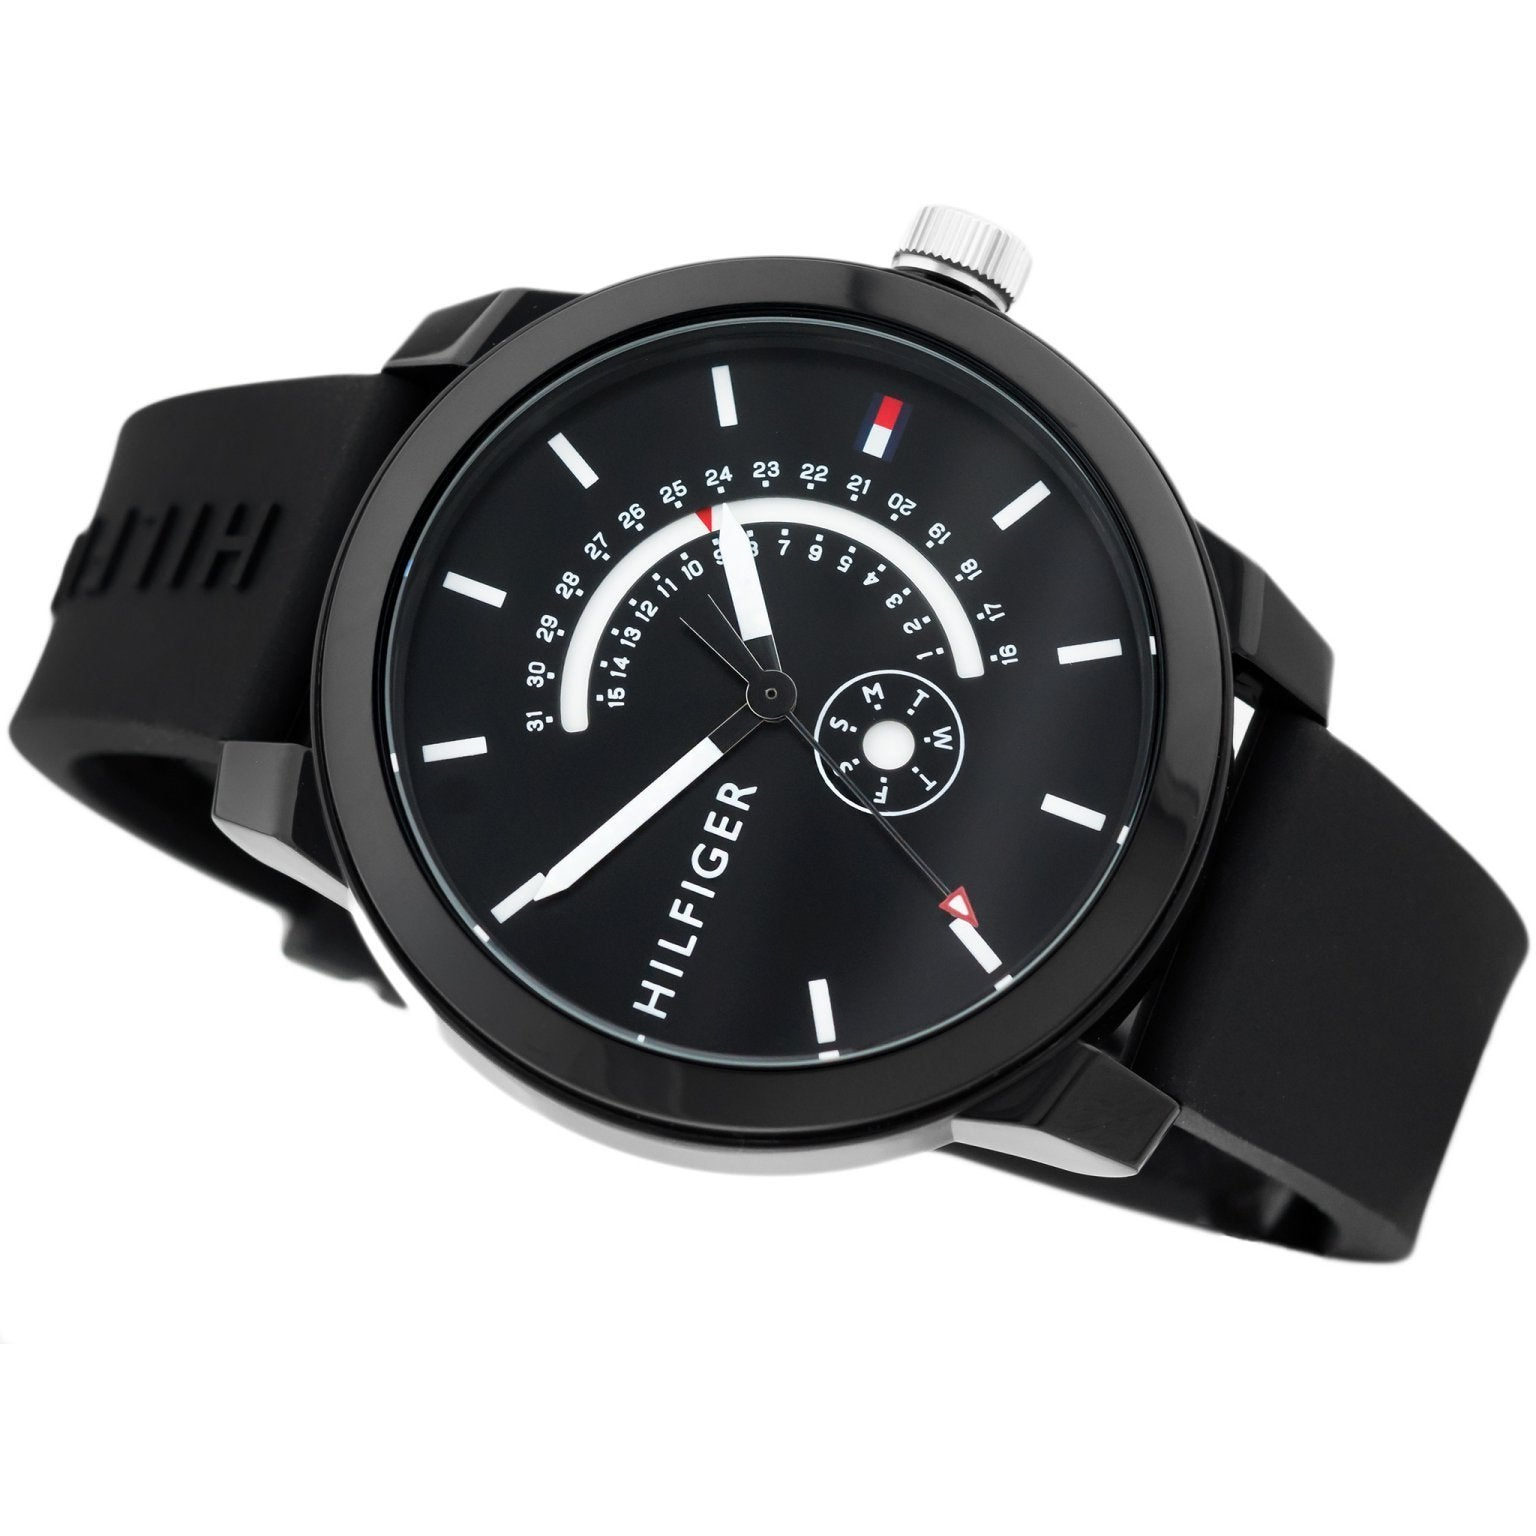 00d7eaa51 Tommy Hilfiger Men's Silicone Sport Watch - 1791483 – The Watch ...